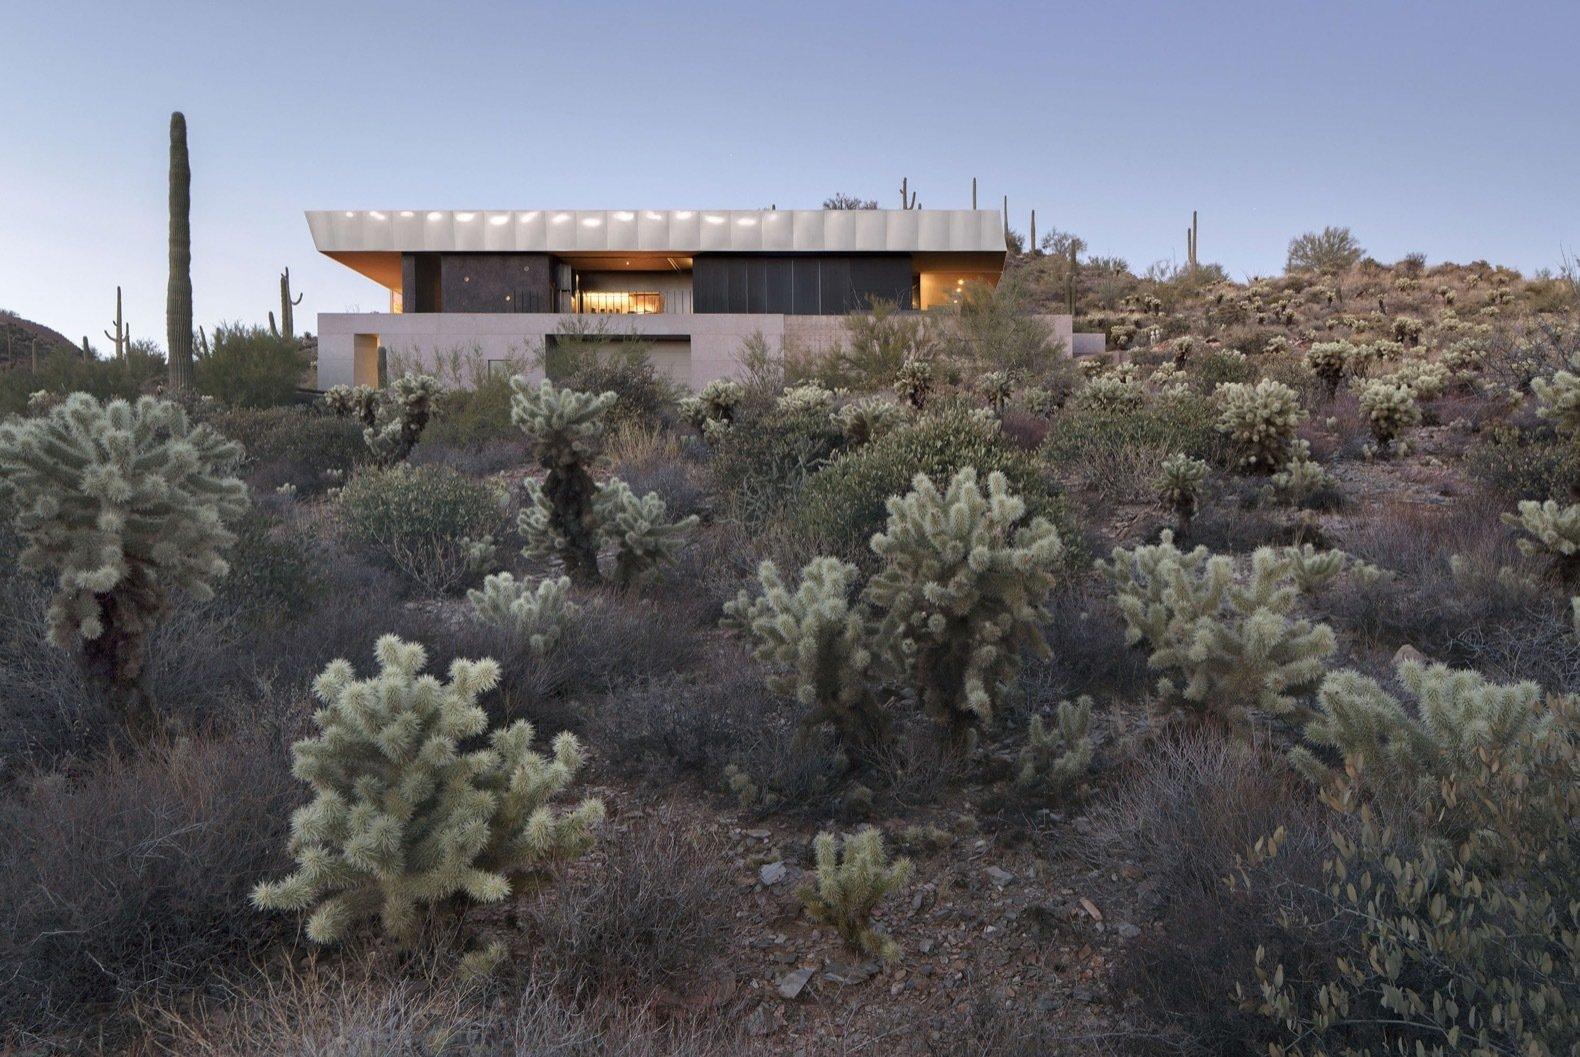 Articles about 8 landscape designs drought tolerant and native desert plants on Dwell.com